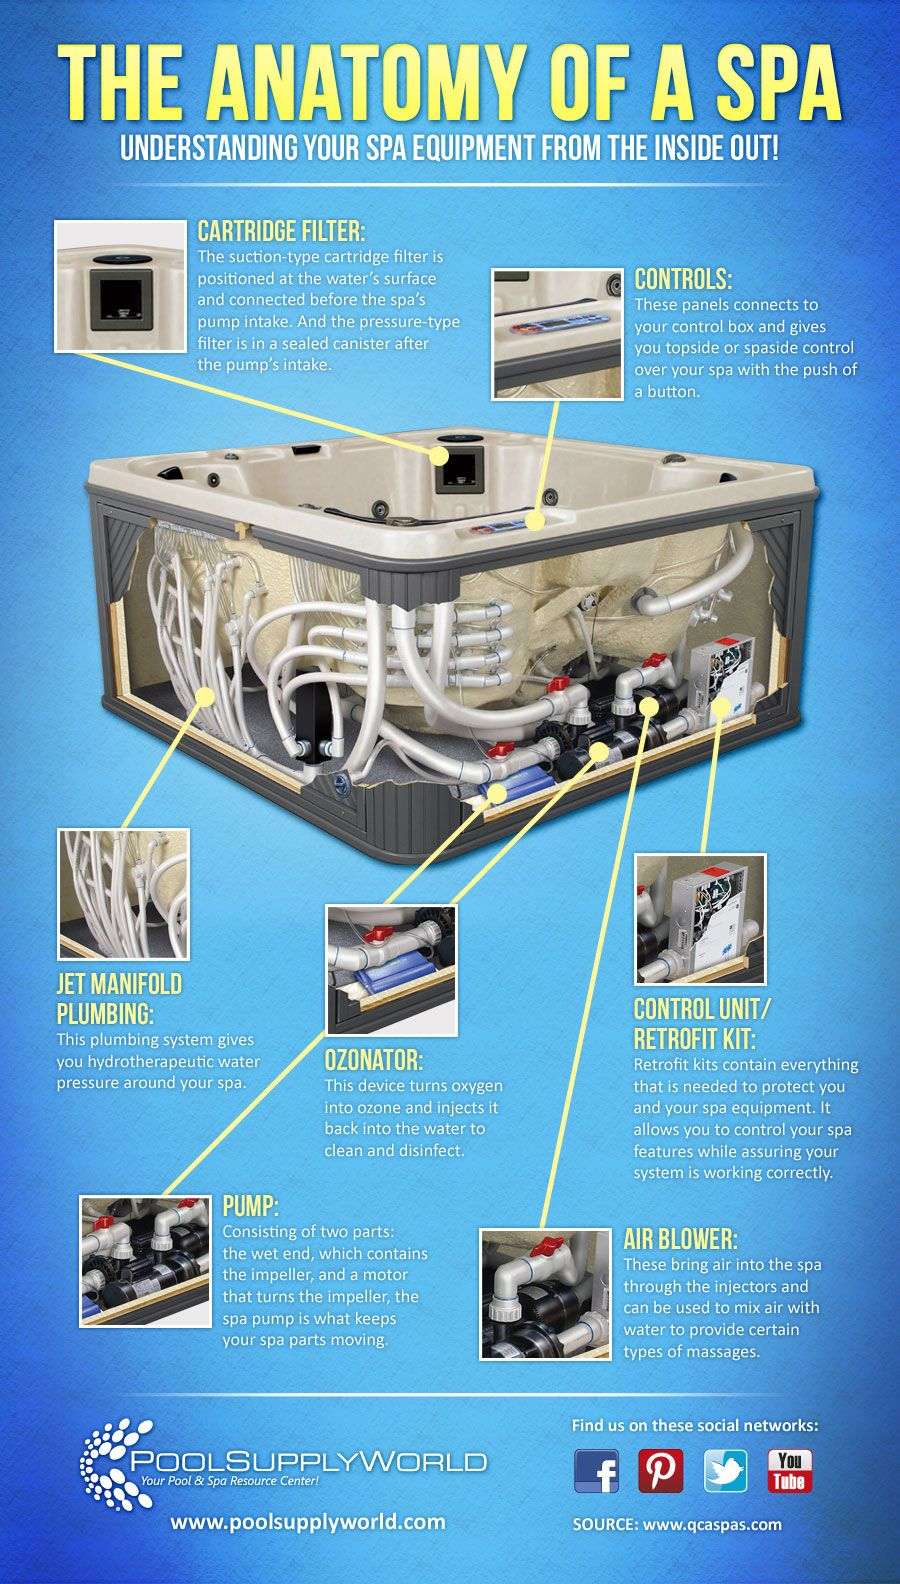 Jacuzzi Pool Pump Seal Kit Above Ground Pools Spas Hot Tubs In 2019 Hot Tub Patio